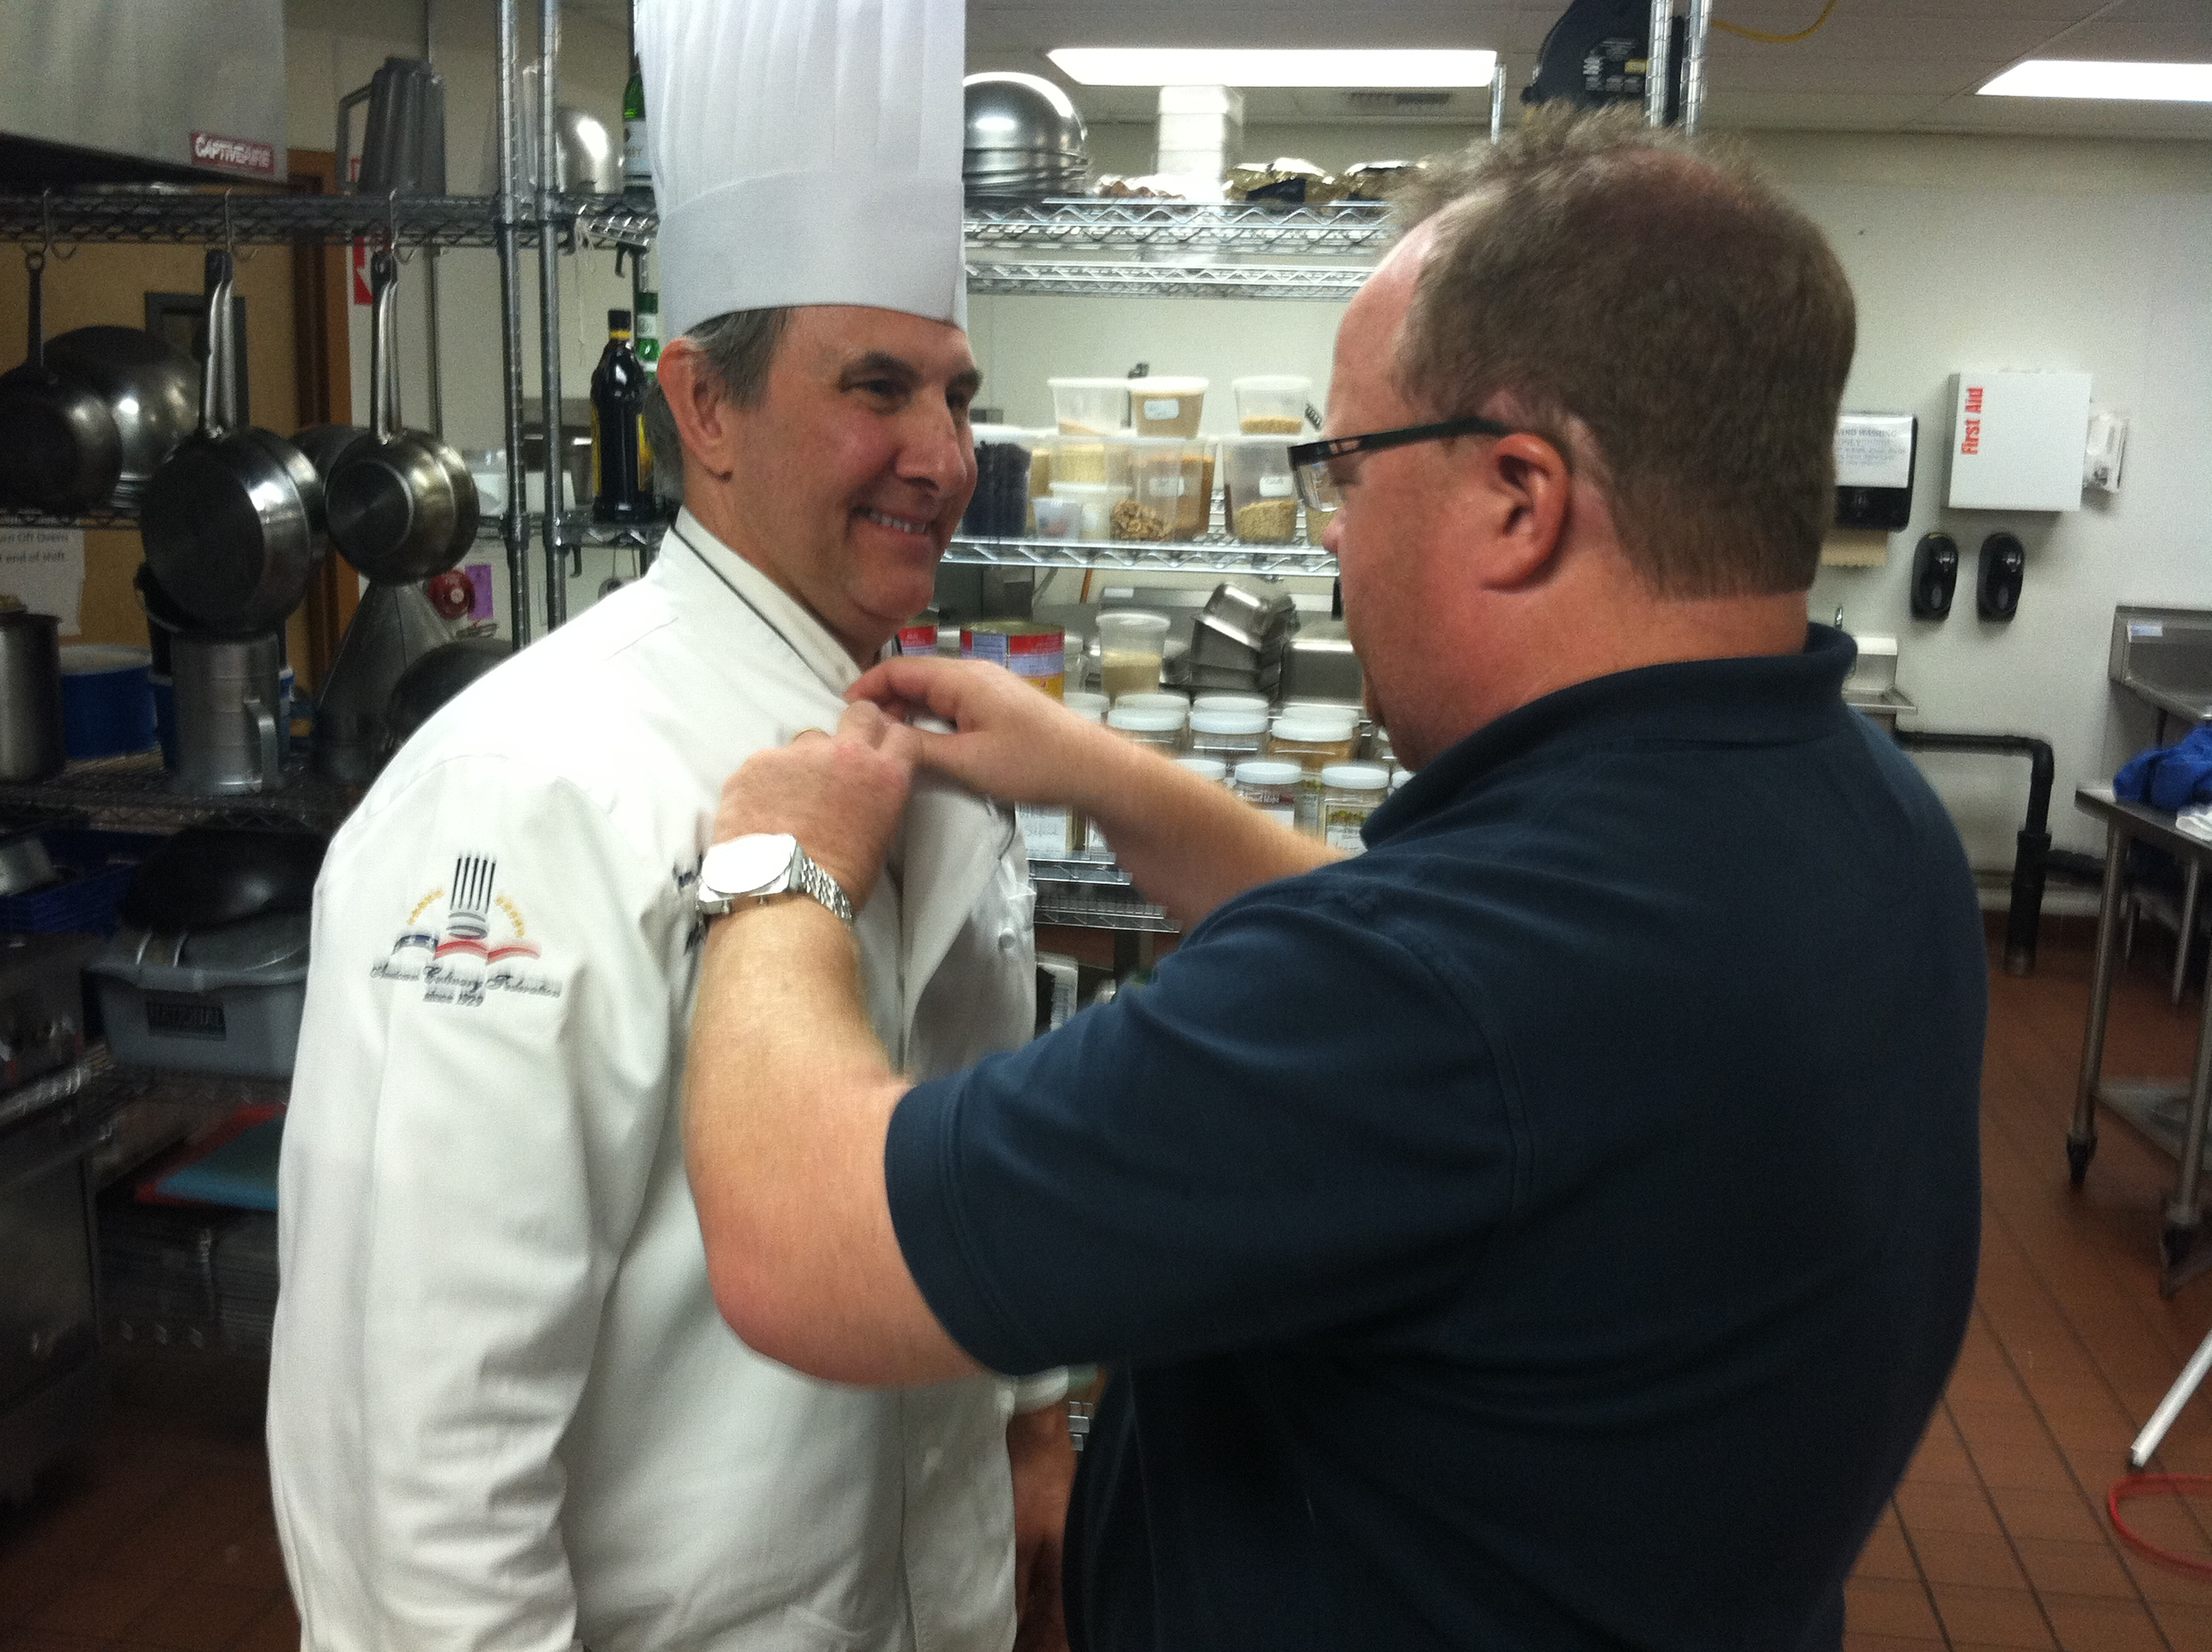 Mic'ing up Chef Jean Paul